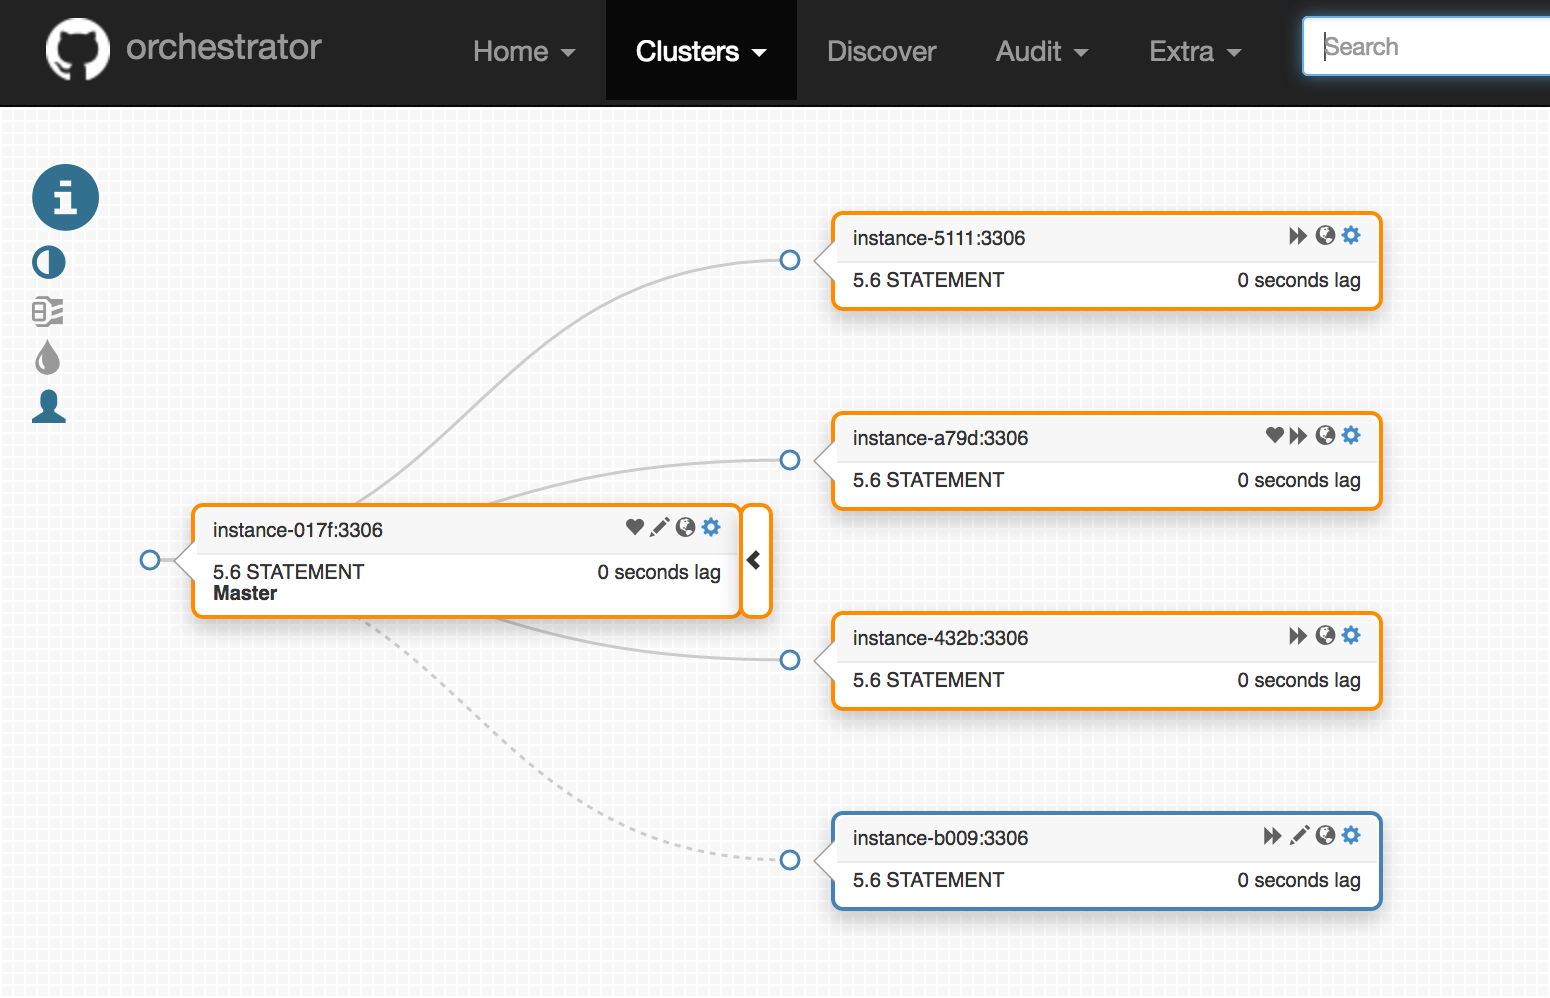 orchestrator-simple-topology